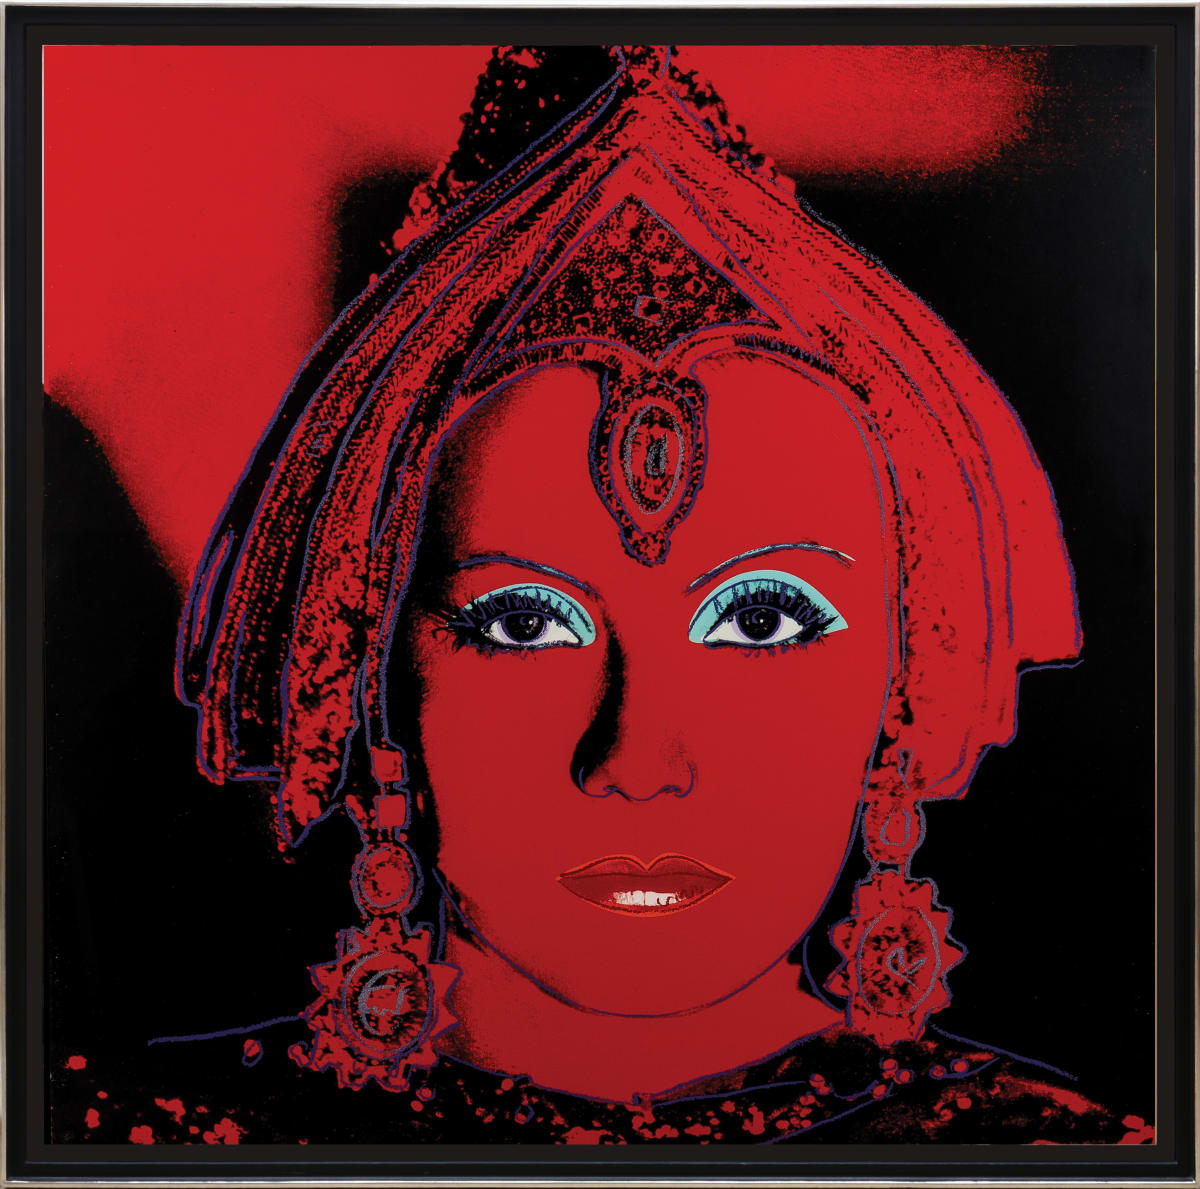 Andy Warhol, The Star (Greta Garbo), 1981 Screenprint in colours and diamond dust on Lenox Museum Board 96.5 x 96.5 cm Edition of 200 This image is after a photograph of Greta Garbo as Mata Hari by Clarence Sinclair Bull.